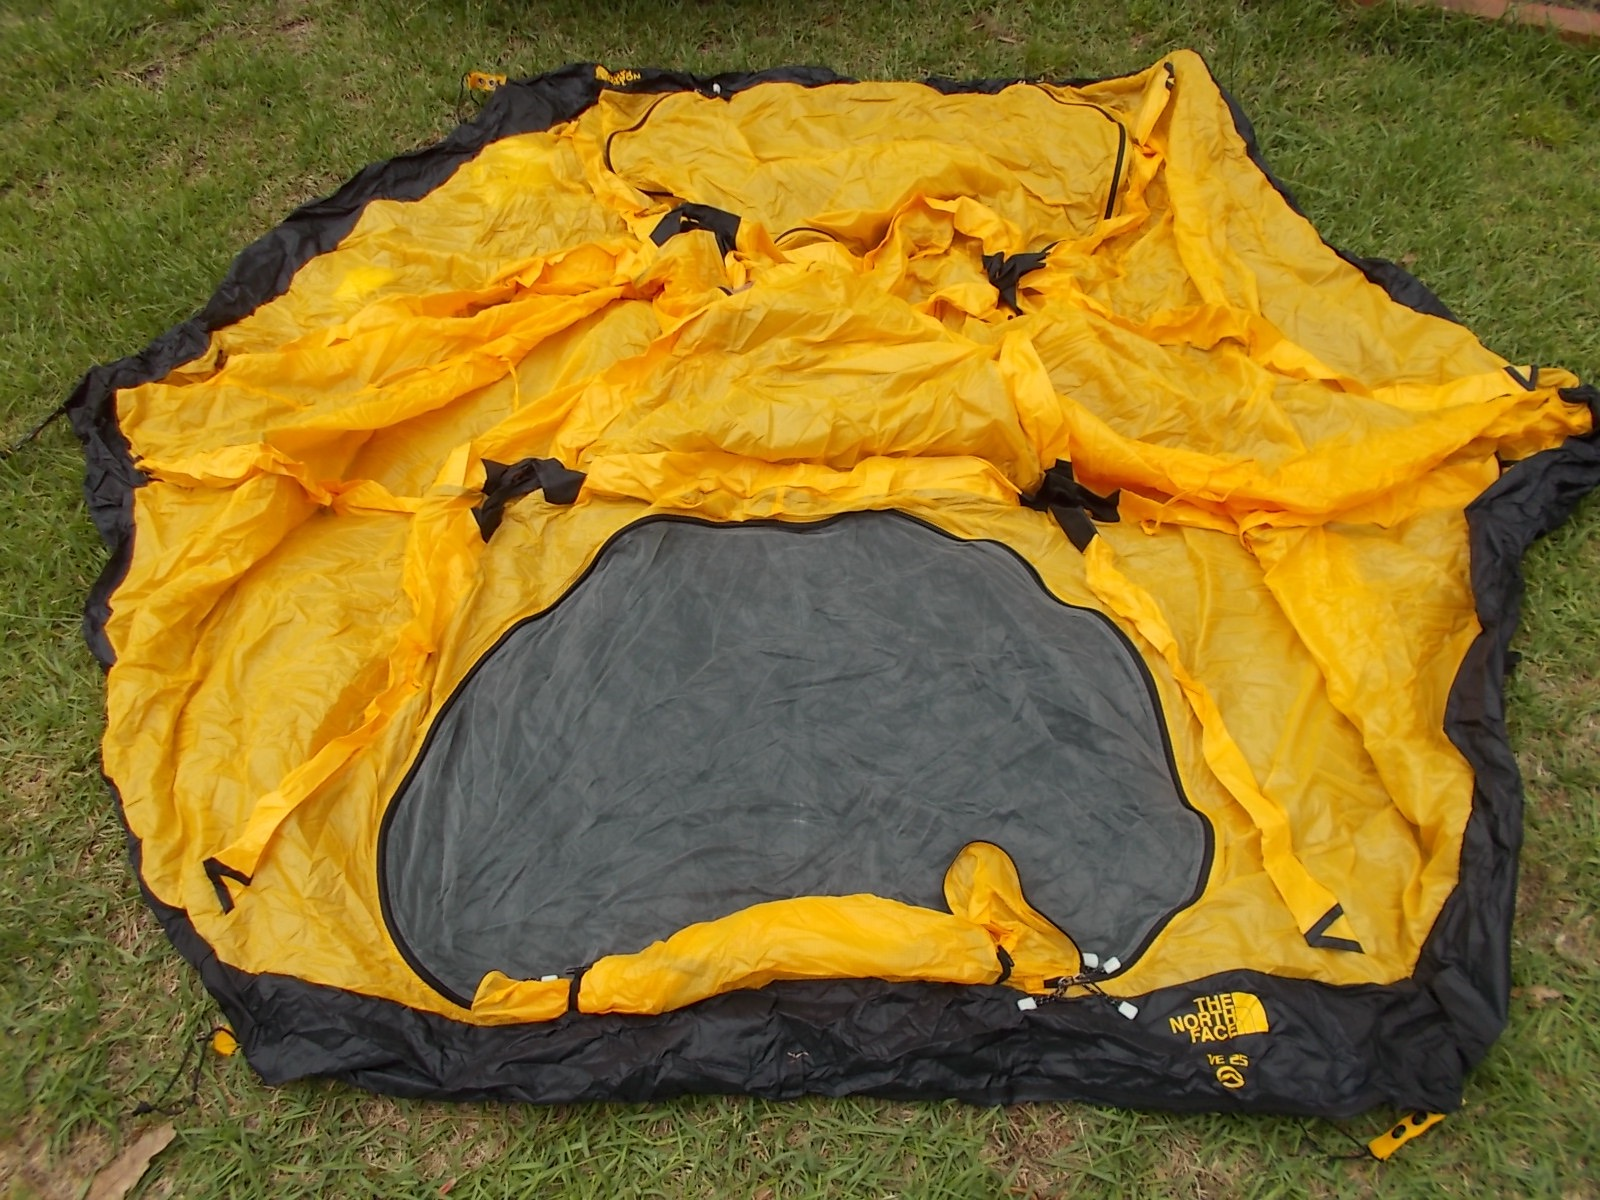 Tent.jpg Views 281 Size ... & Northface VE25 Tent for sale. $450 - Toyota FJ Cruiser Forum